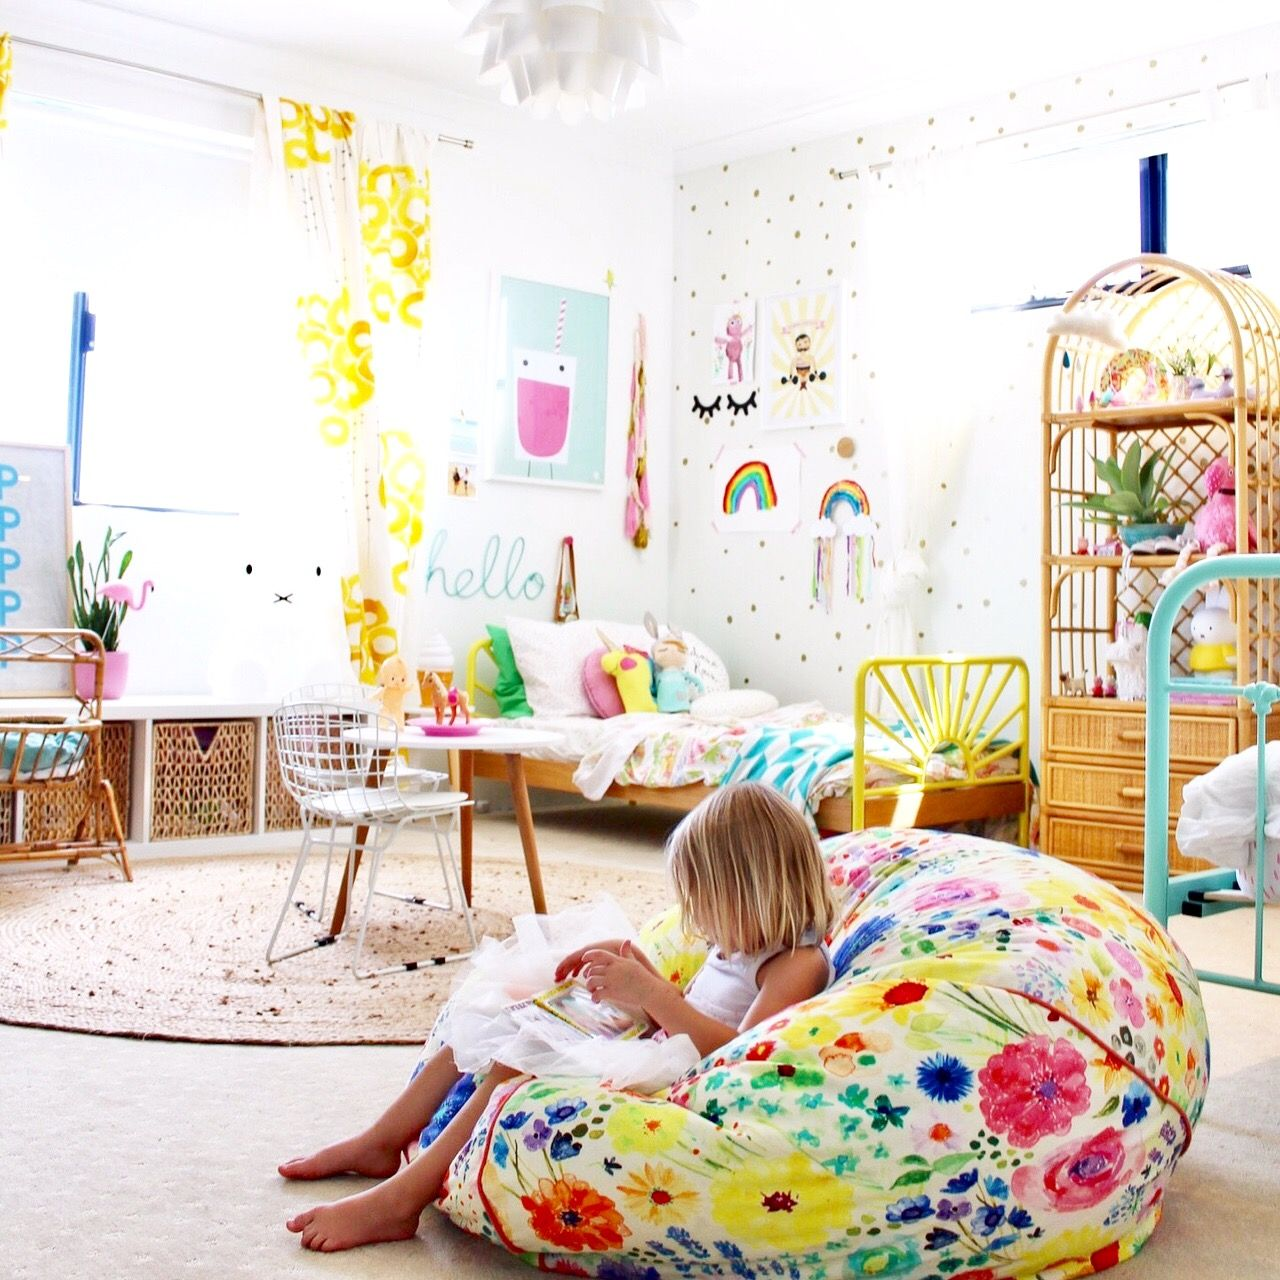 Kids Room Decoration: Way Back Wednesday - Kids Room Ideas